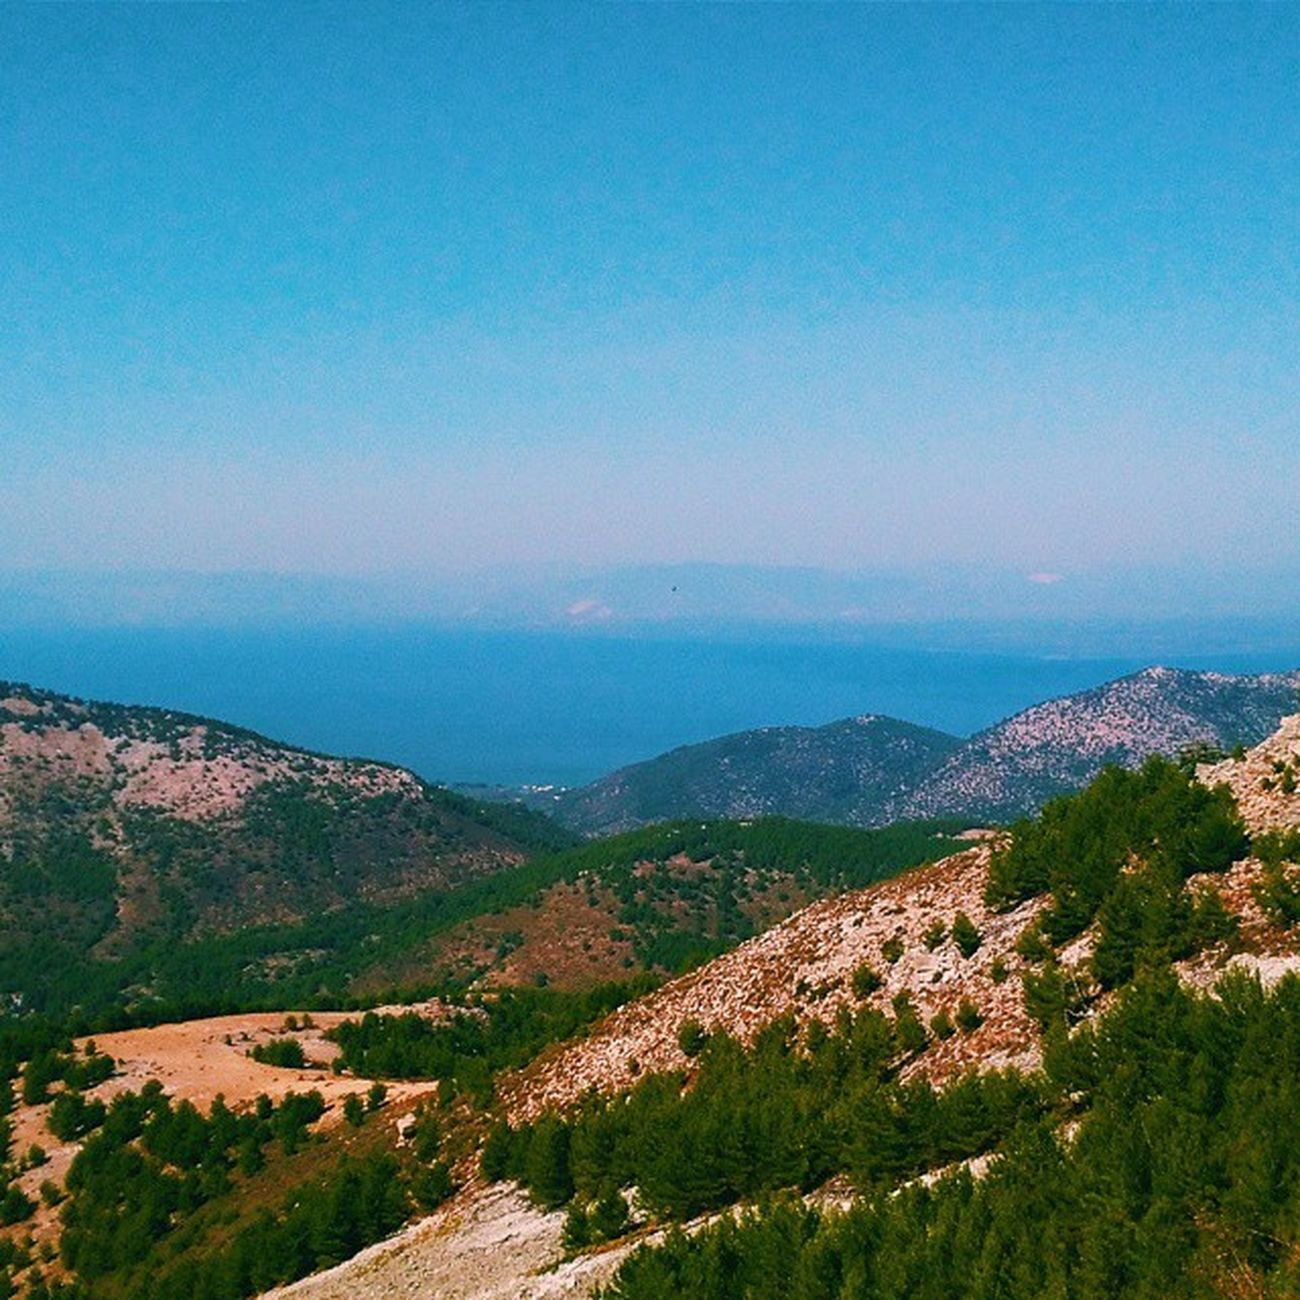 Greece is not all about the sea. It's also about the mountains and I got to be on top of them both. Thassos Thassosisland Greece Greecestagram Igersgreece Ig_europe Ig_world Ig_greece Lifeofadventure Liveauthentic Latergram Natgeotravel Cntraveler Amazing September Widenyourworld Wildlife Ethnic Everydayinpics Enjoythesun Travelgram Thephotosociety Tedooro Beautifuldestinations Vscogrid vsco vscocam vscopure